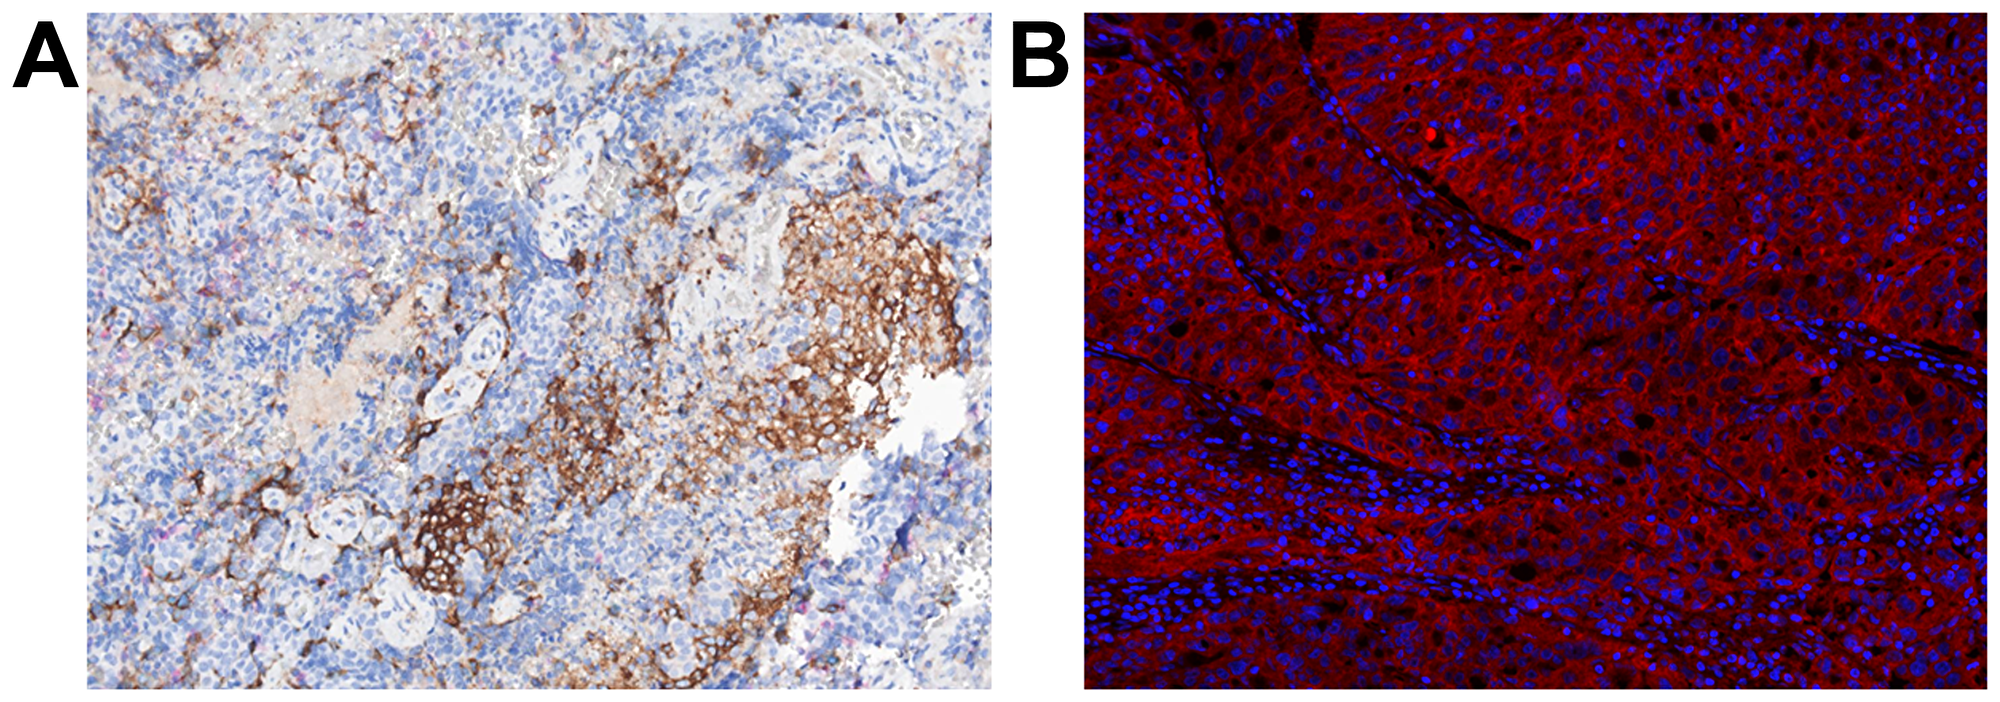 Immunohistochemistry and immunofluorescence of tumor tissue.